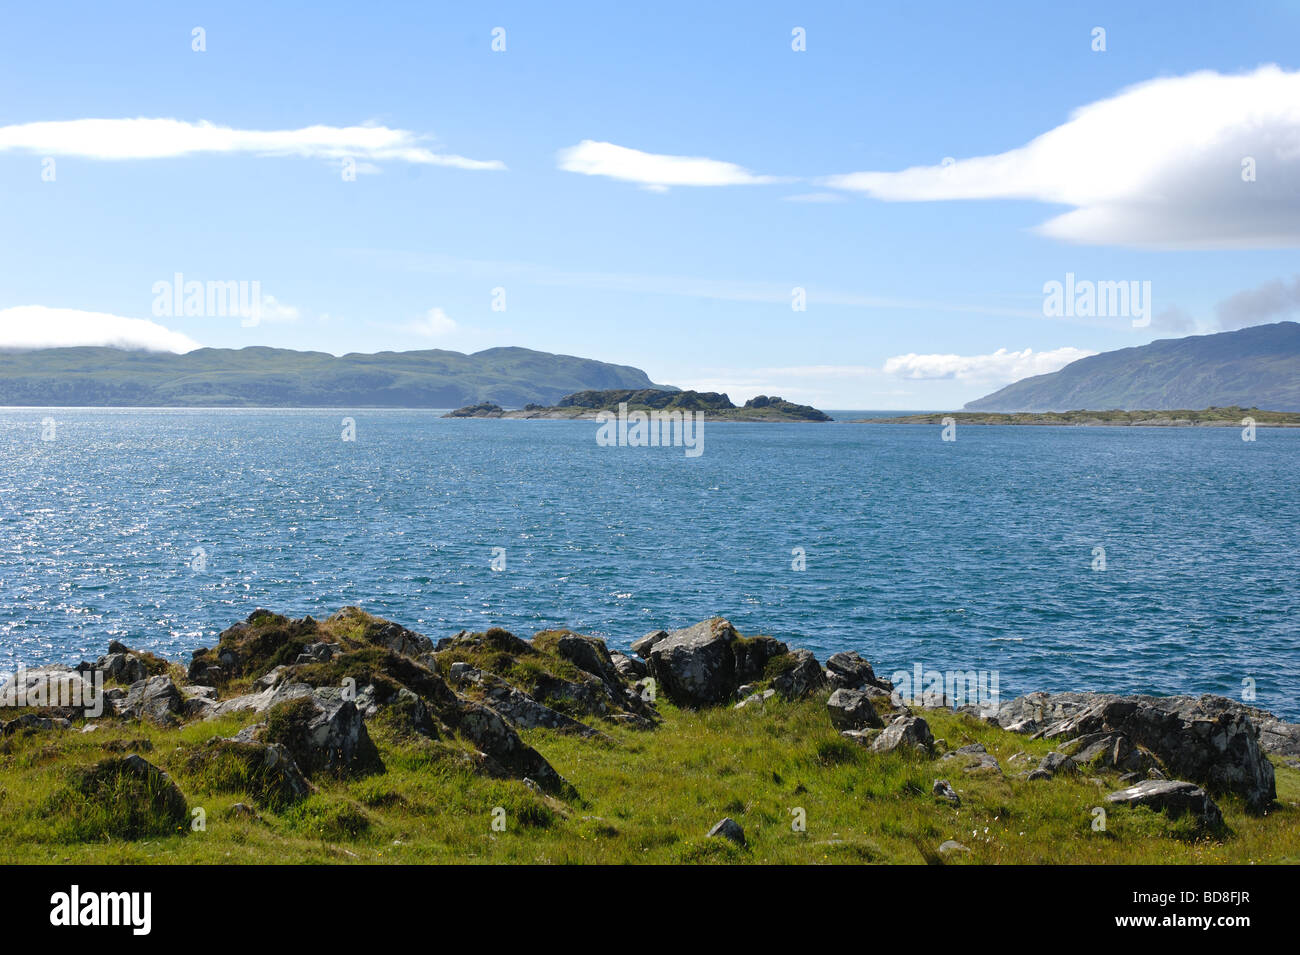 View from Craignish Point looking west towards Gulf of Corryvreckan on the west coast of Scotland - Stock Image